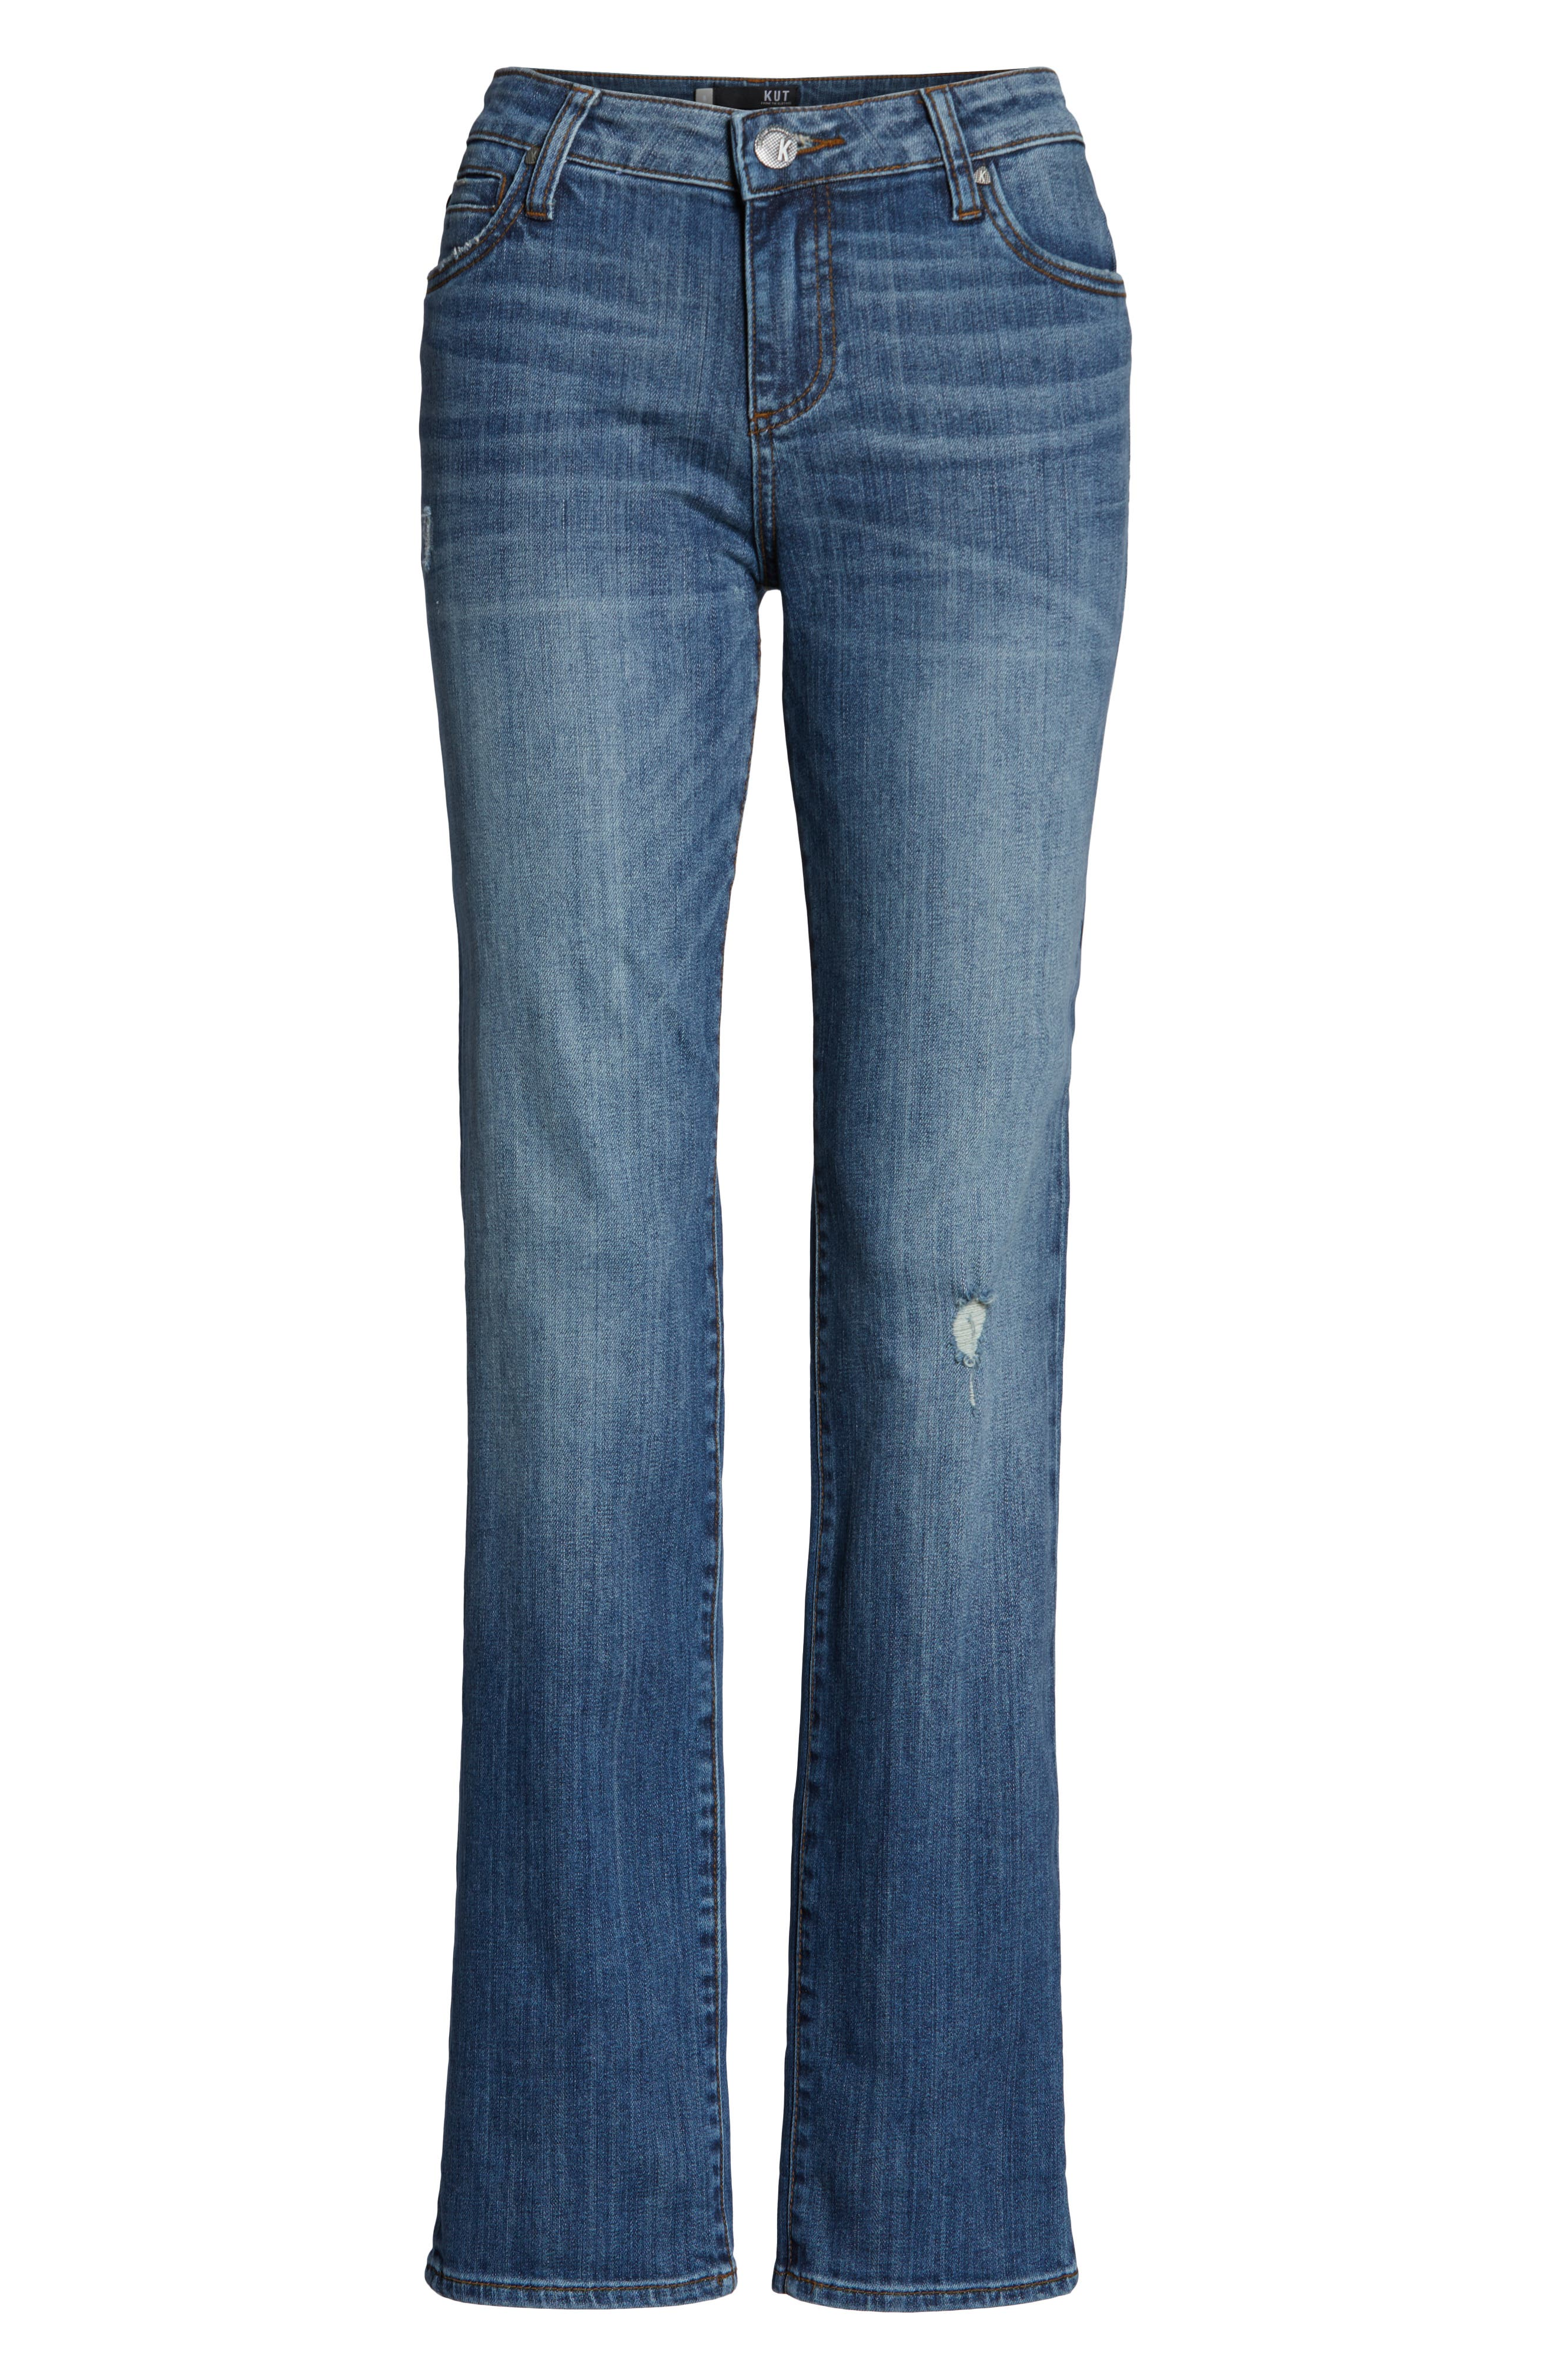 KUT FROM THE KLOTH, Catherine Distressed Roll Hem Crop Boyfriend Jeans, Alternate thumbnail 6, color, PARALLEL